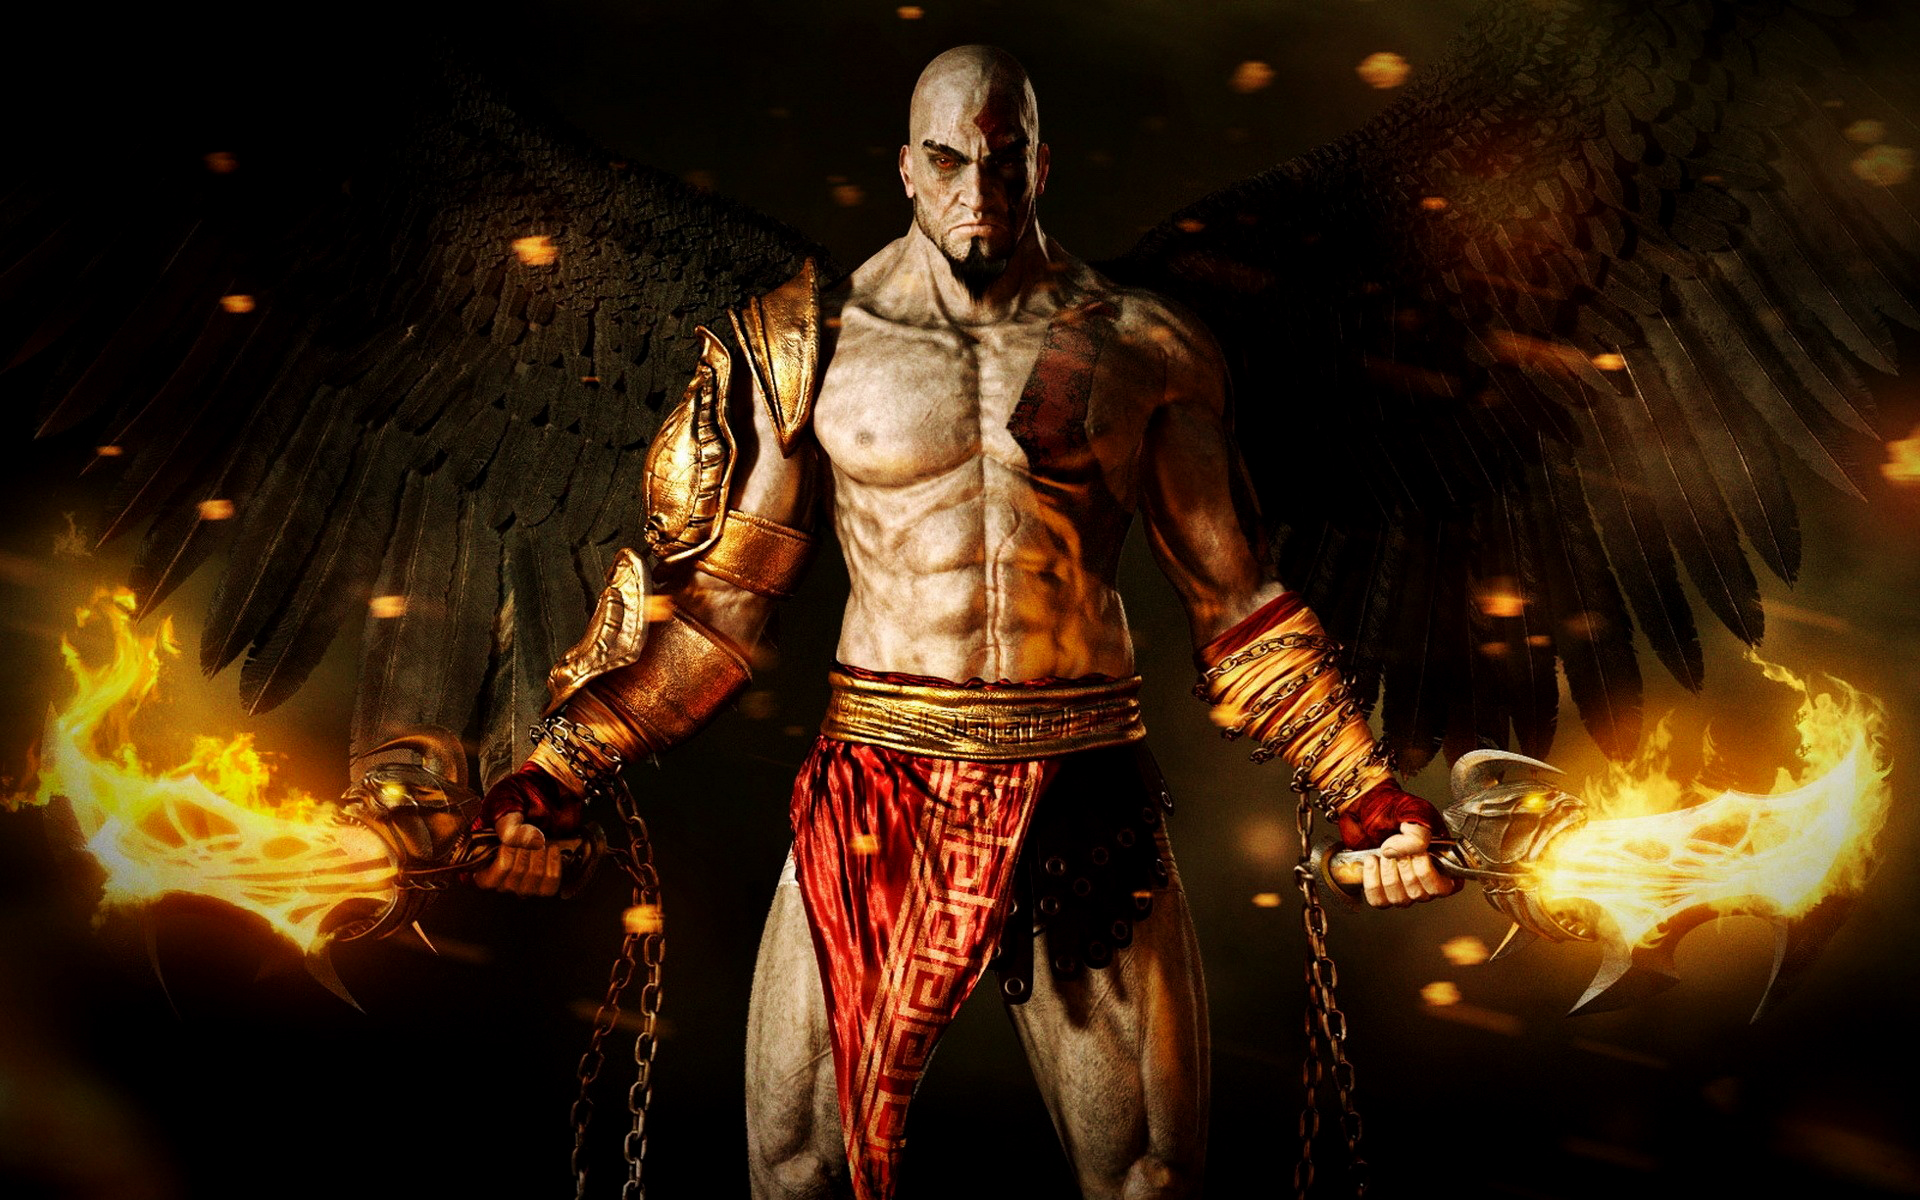 http://4.bp.blogspot.com/-LY7TuuZfSZQ/UOcOepgp-XI/AAAAAAAAG8g/L2zVam5HNtI/s2000/God-of-War-Kratos-with-Angel-Wings-HD-Wallpaper_Vvallpaper.Net.jpg